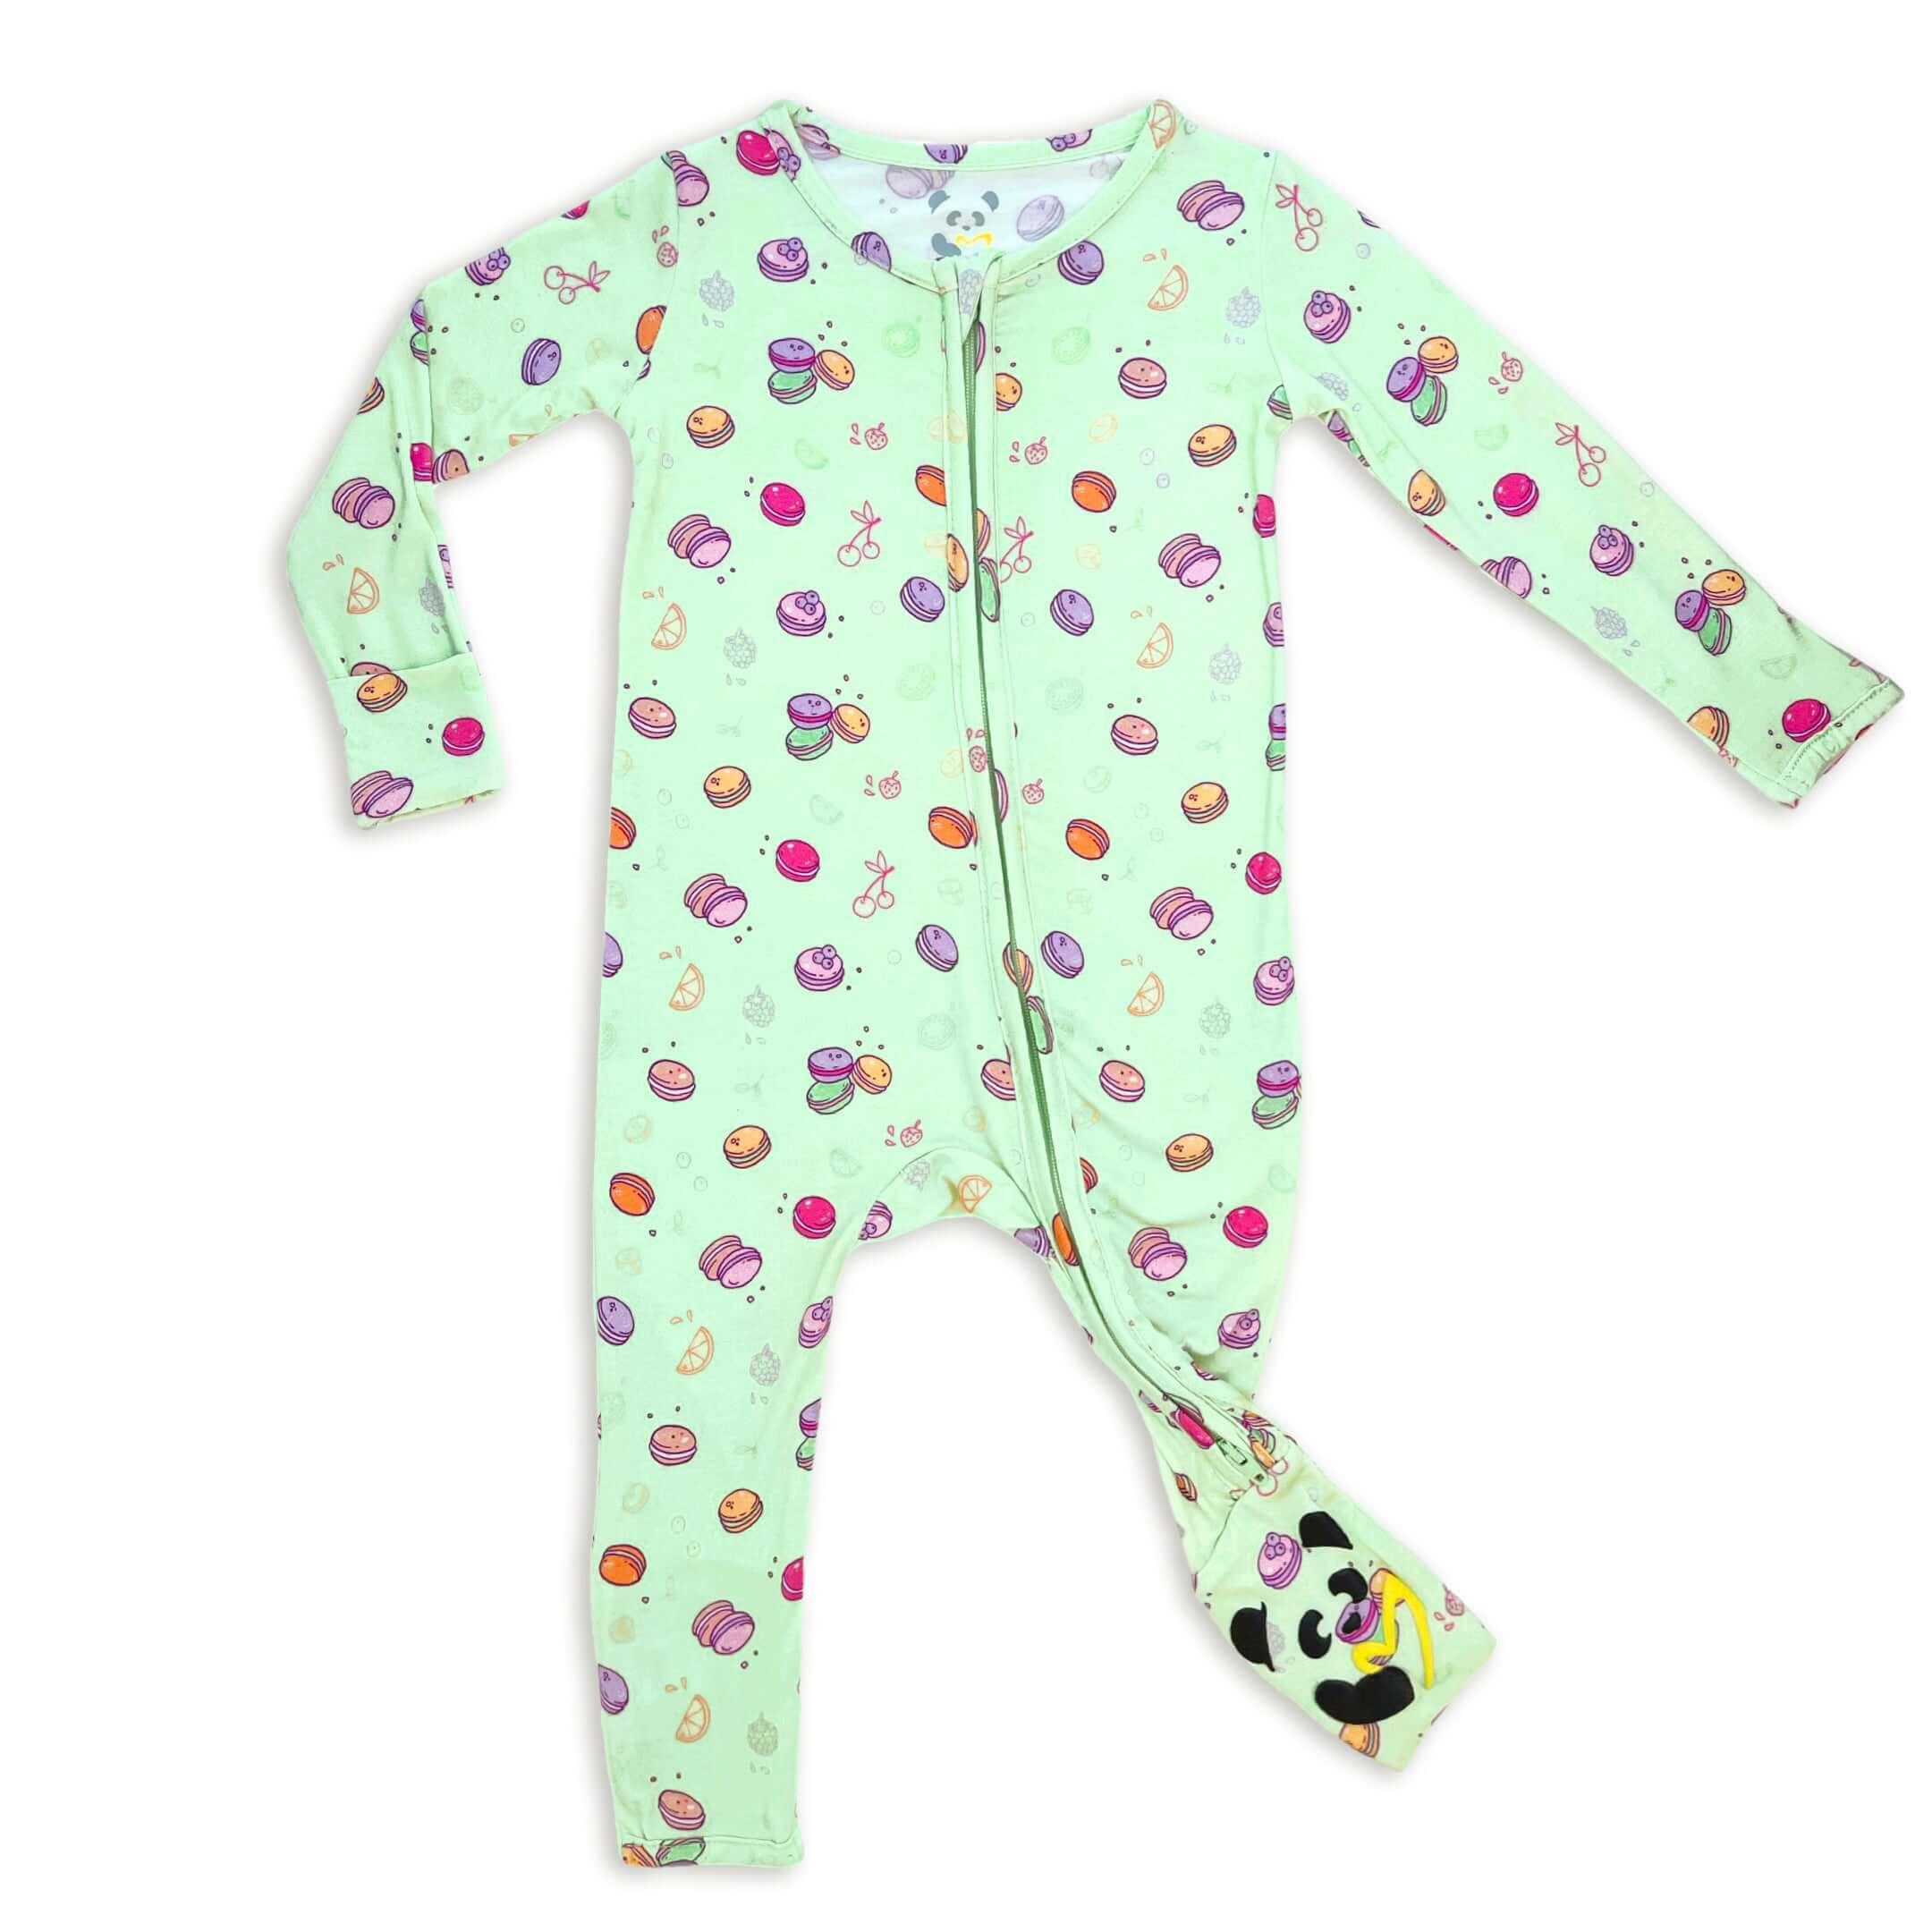 LIMITED EDITION! Macaron Bamboo Convertible Footie - 3-6 Months